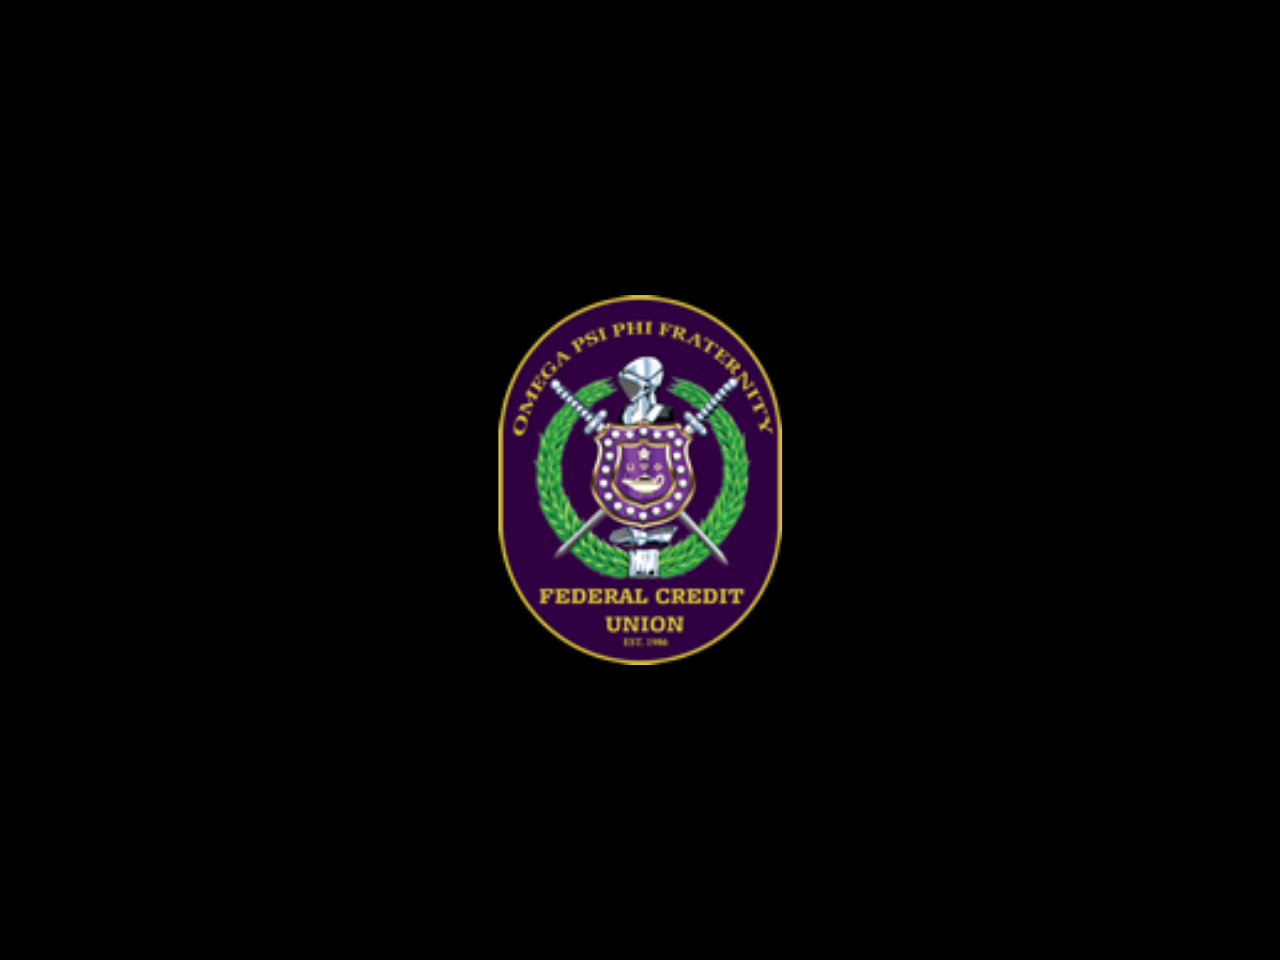 Omega Psi Phi Fraternity Federal Credit Union